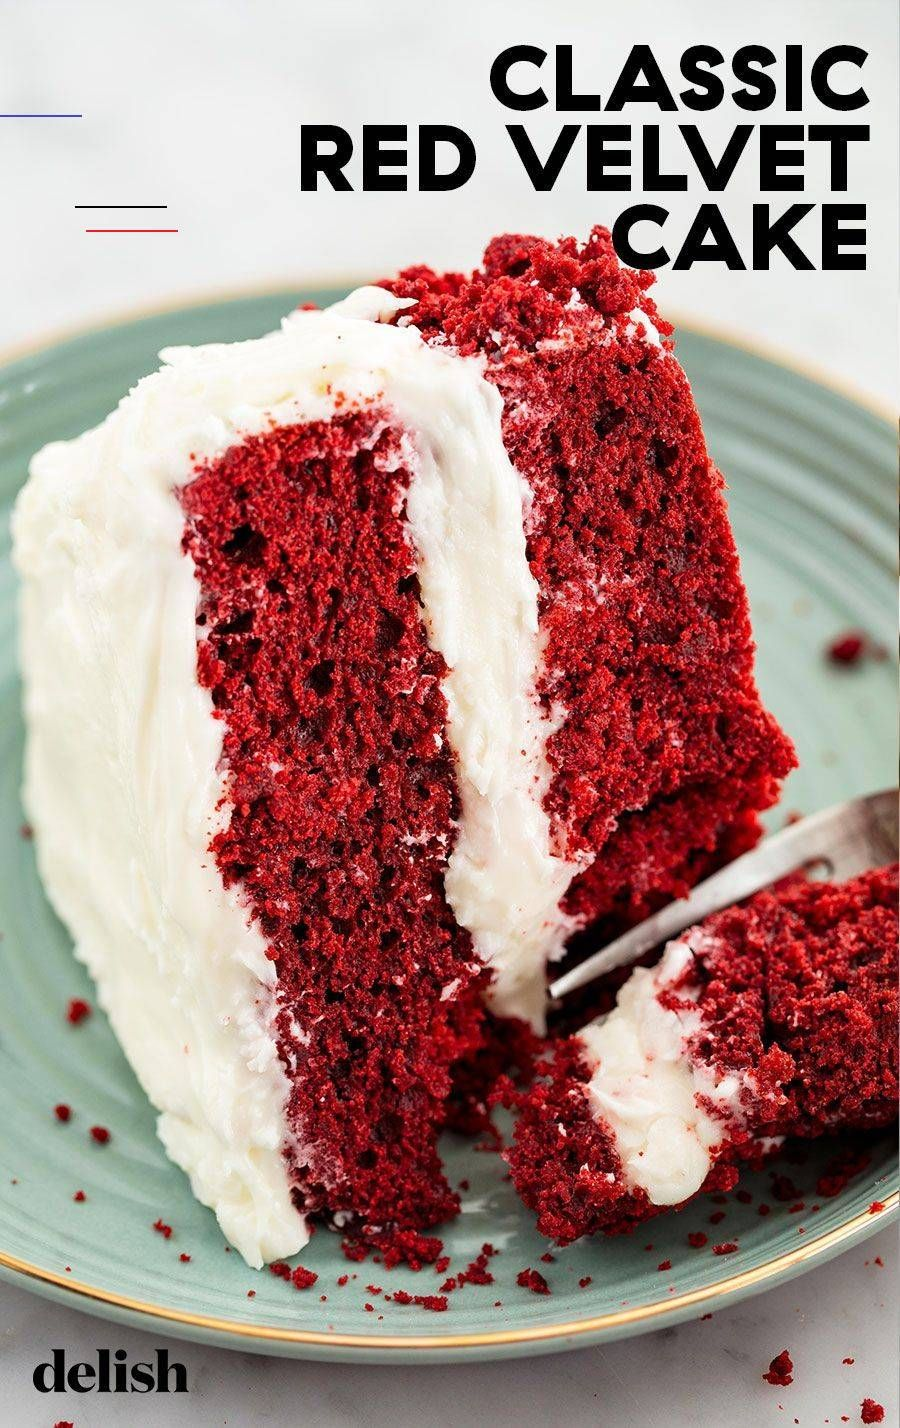 Red Velvet Cake Steals The Show Every Time Redvelvetcake This Red Velvet Cake Is One Of The Most Mesmerizing Cakes Around Em 2020